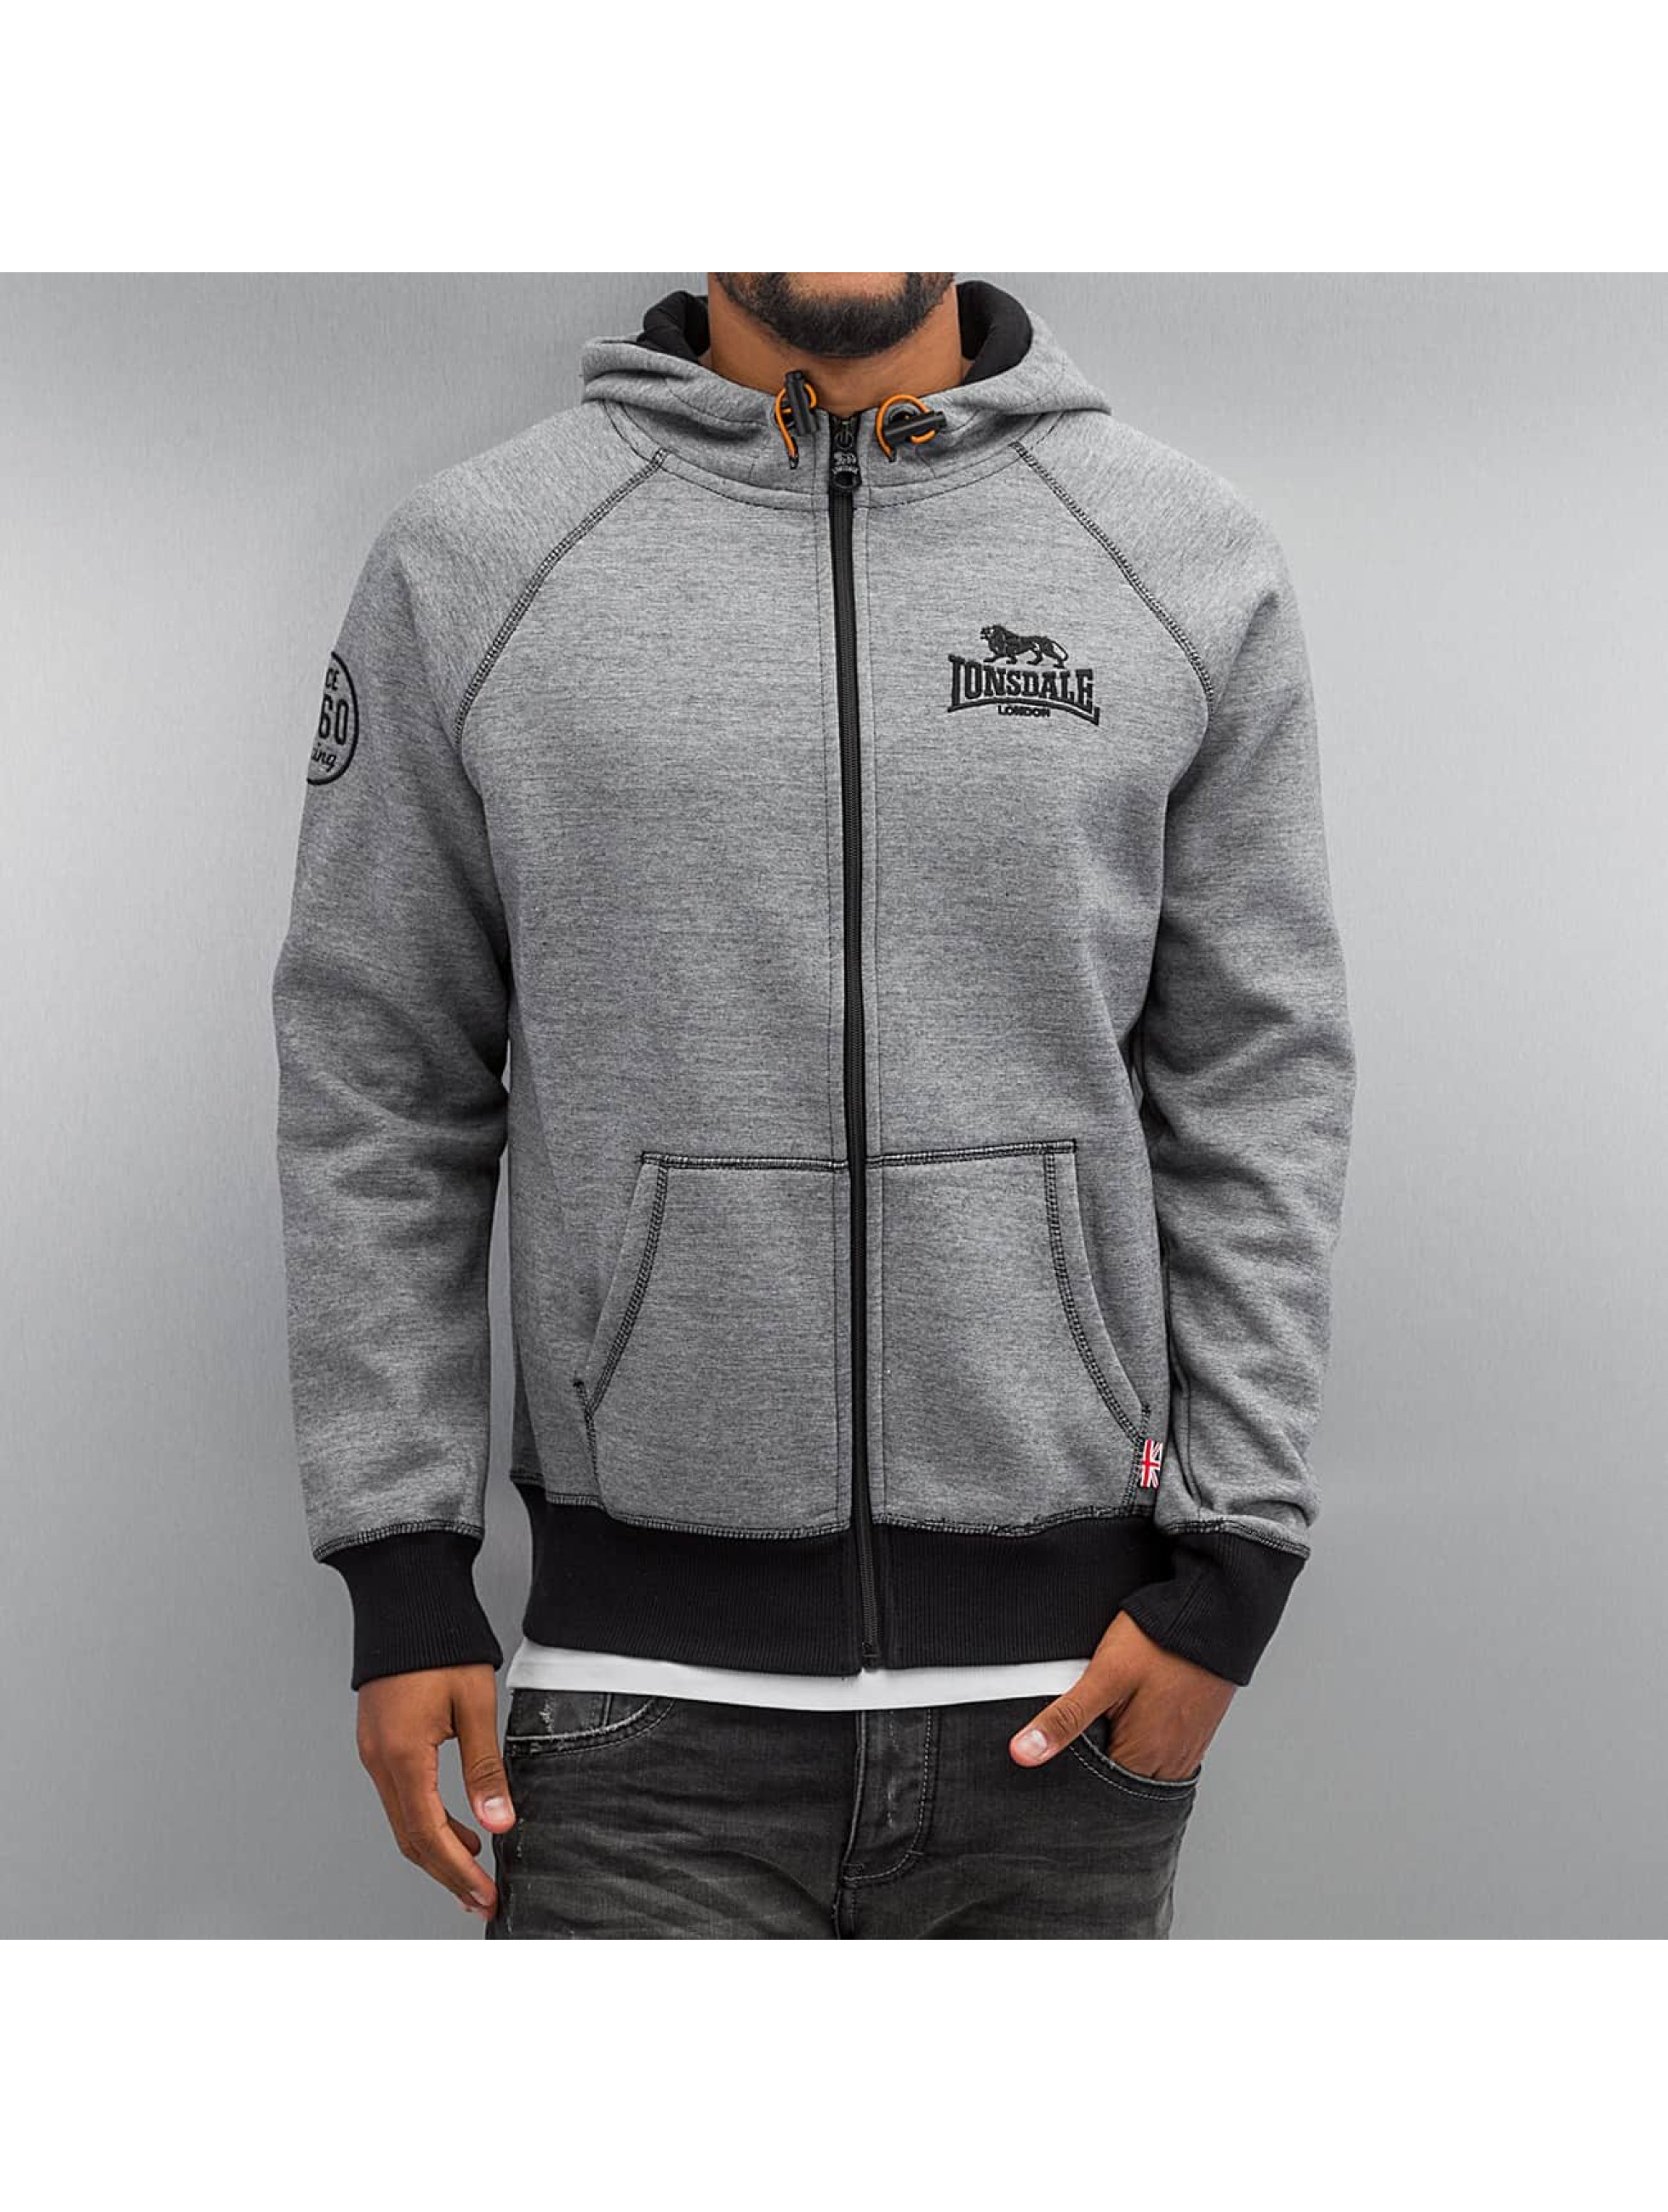 Lonsdale London Zip Hoodie London šedá